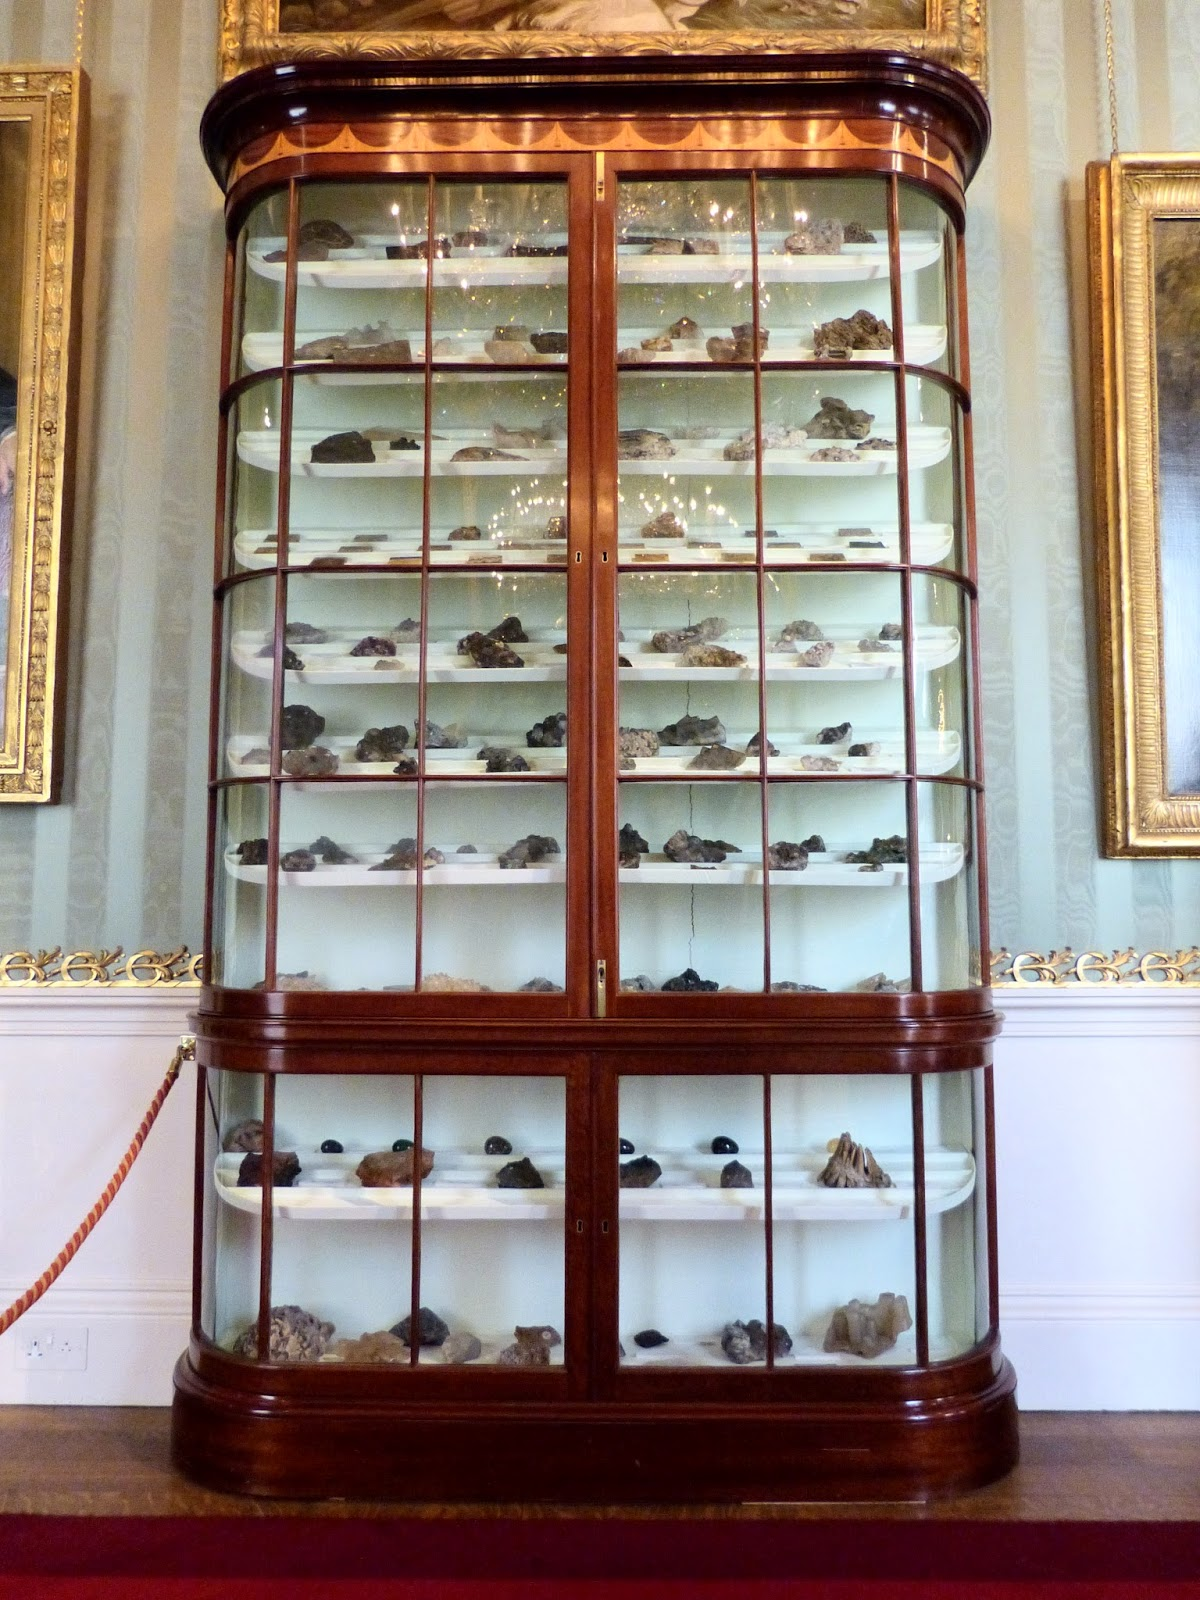 Display case in South Sketch Gallery, Chatsworth